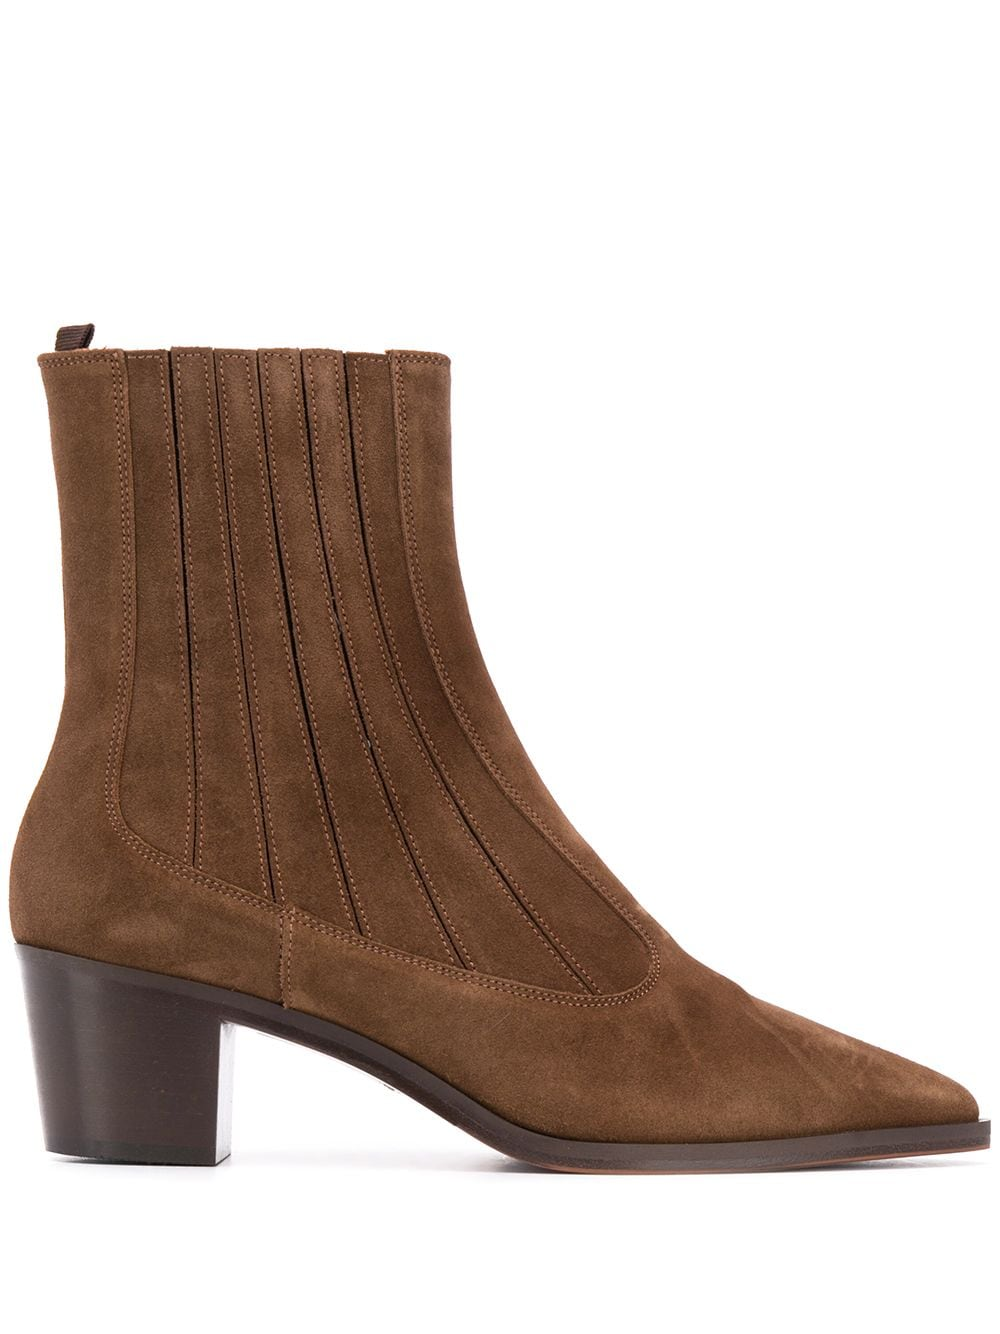 Brown leather and suede Texas split leather boots  L'AUTRE CHOSE |  | LDM082.50WC04482117